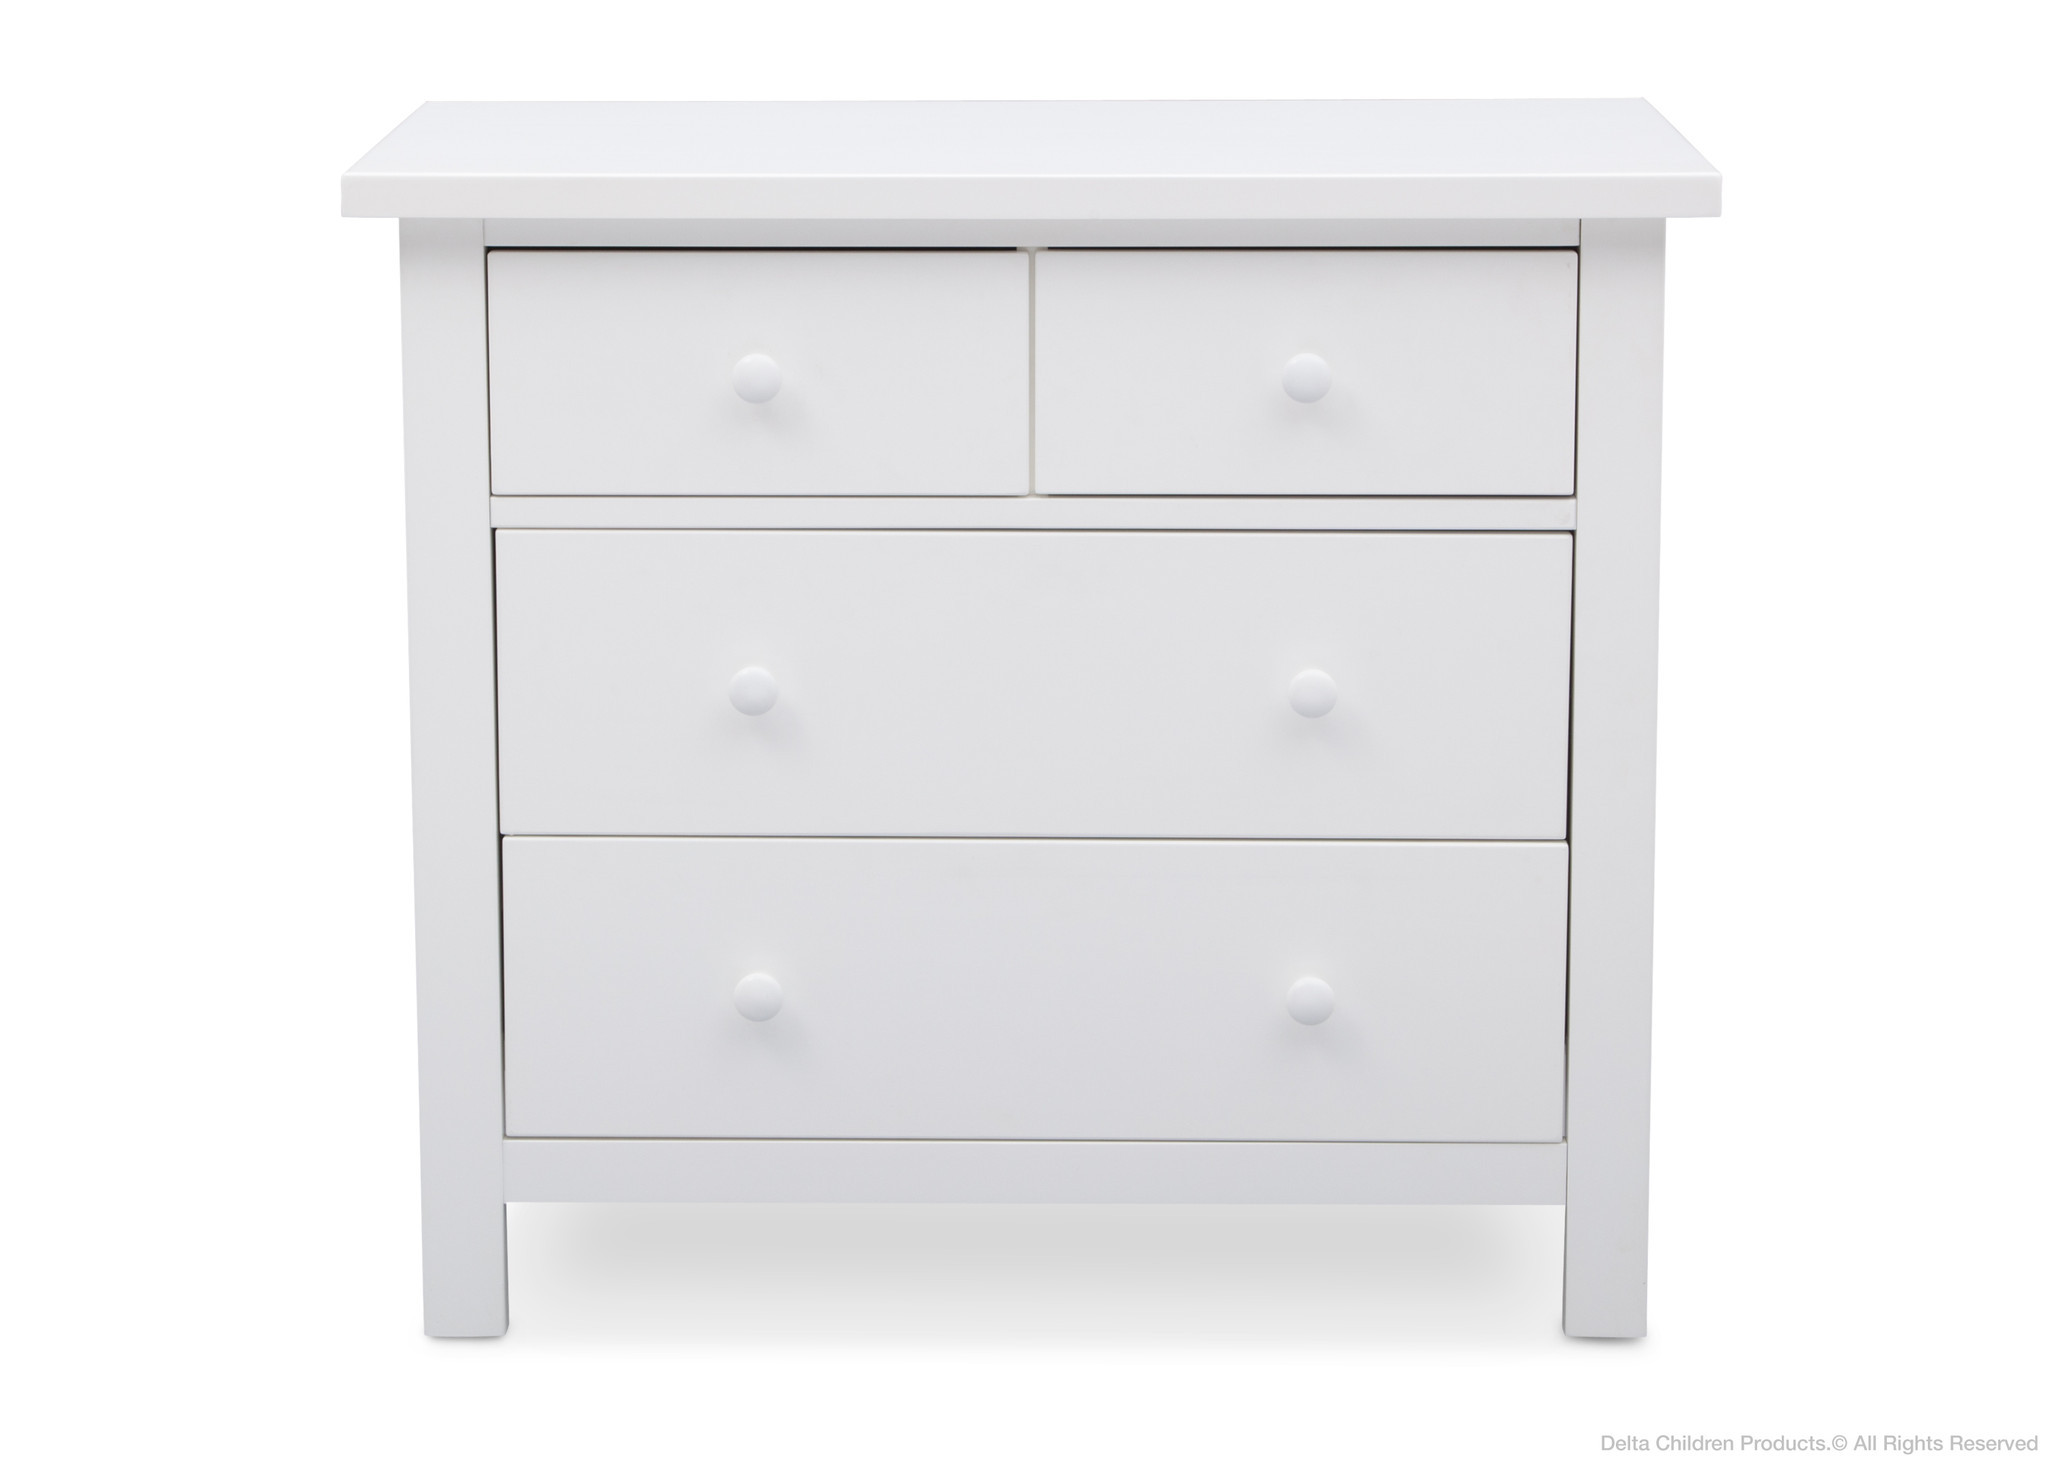 Unique Furniture Design Cabinet with 4 Drawer Dresser for Bedroom Ideas: Uniqe White 4 Drawer Dresser